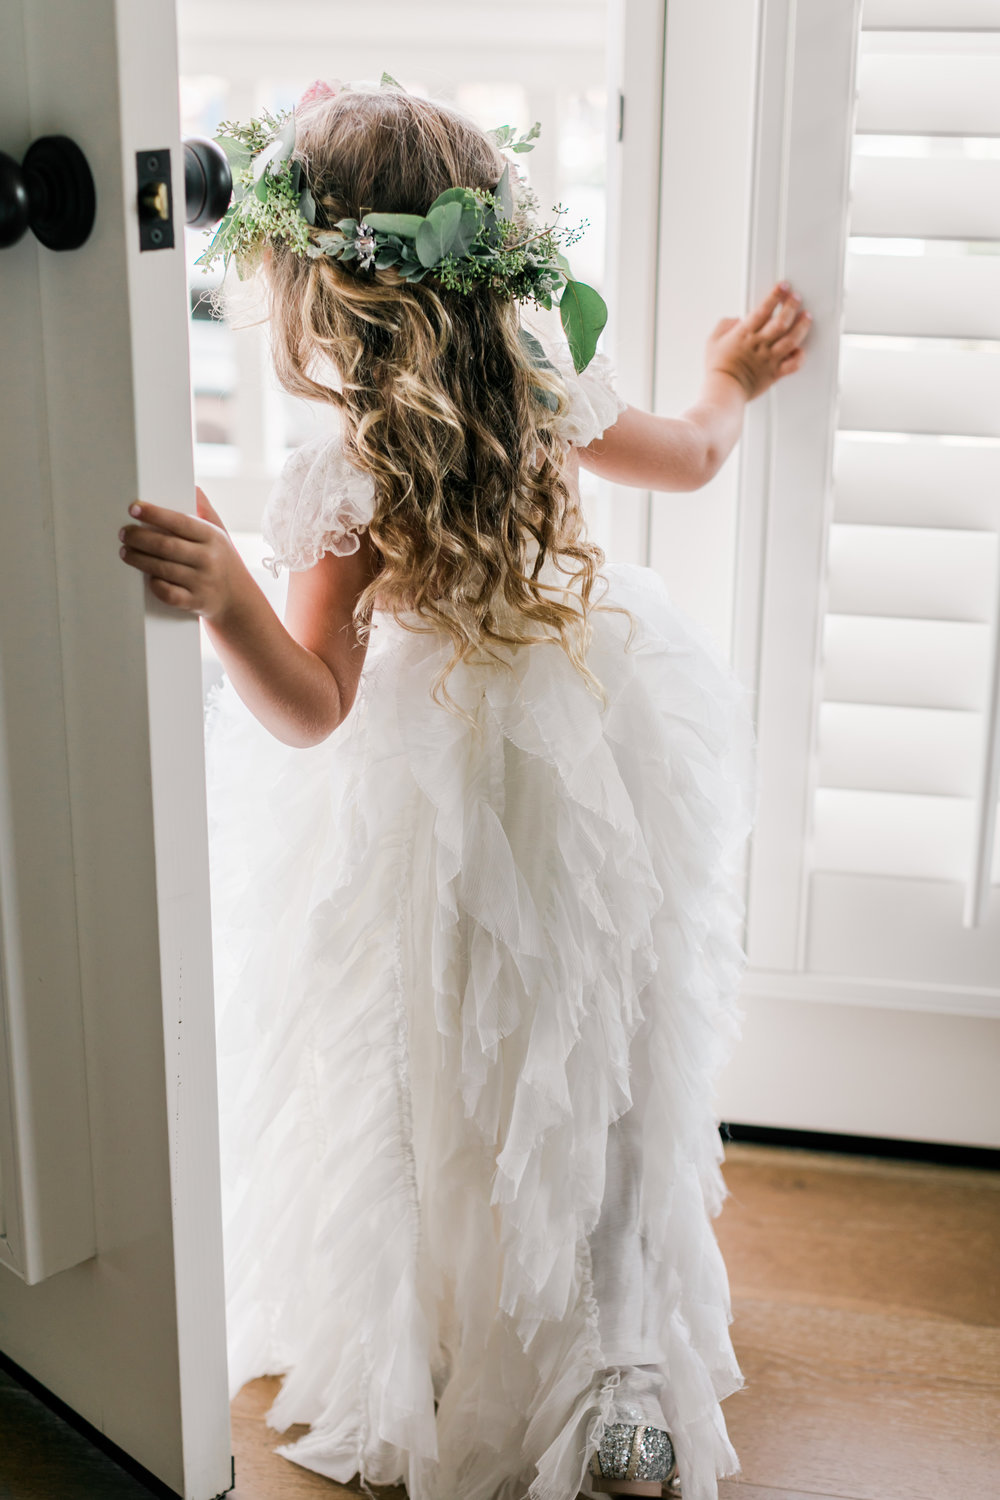 Destination Beach Wedding_Valorie Darling Photography-1350.jpg